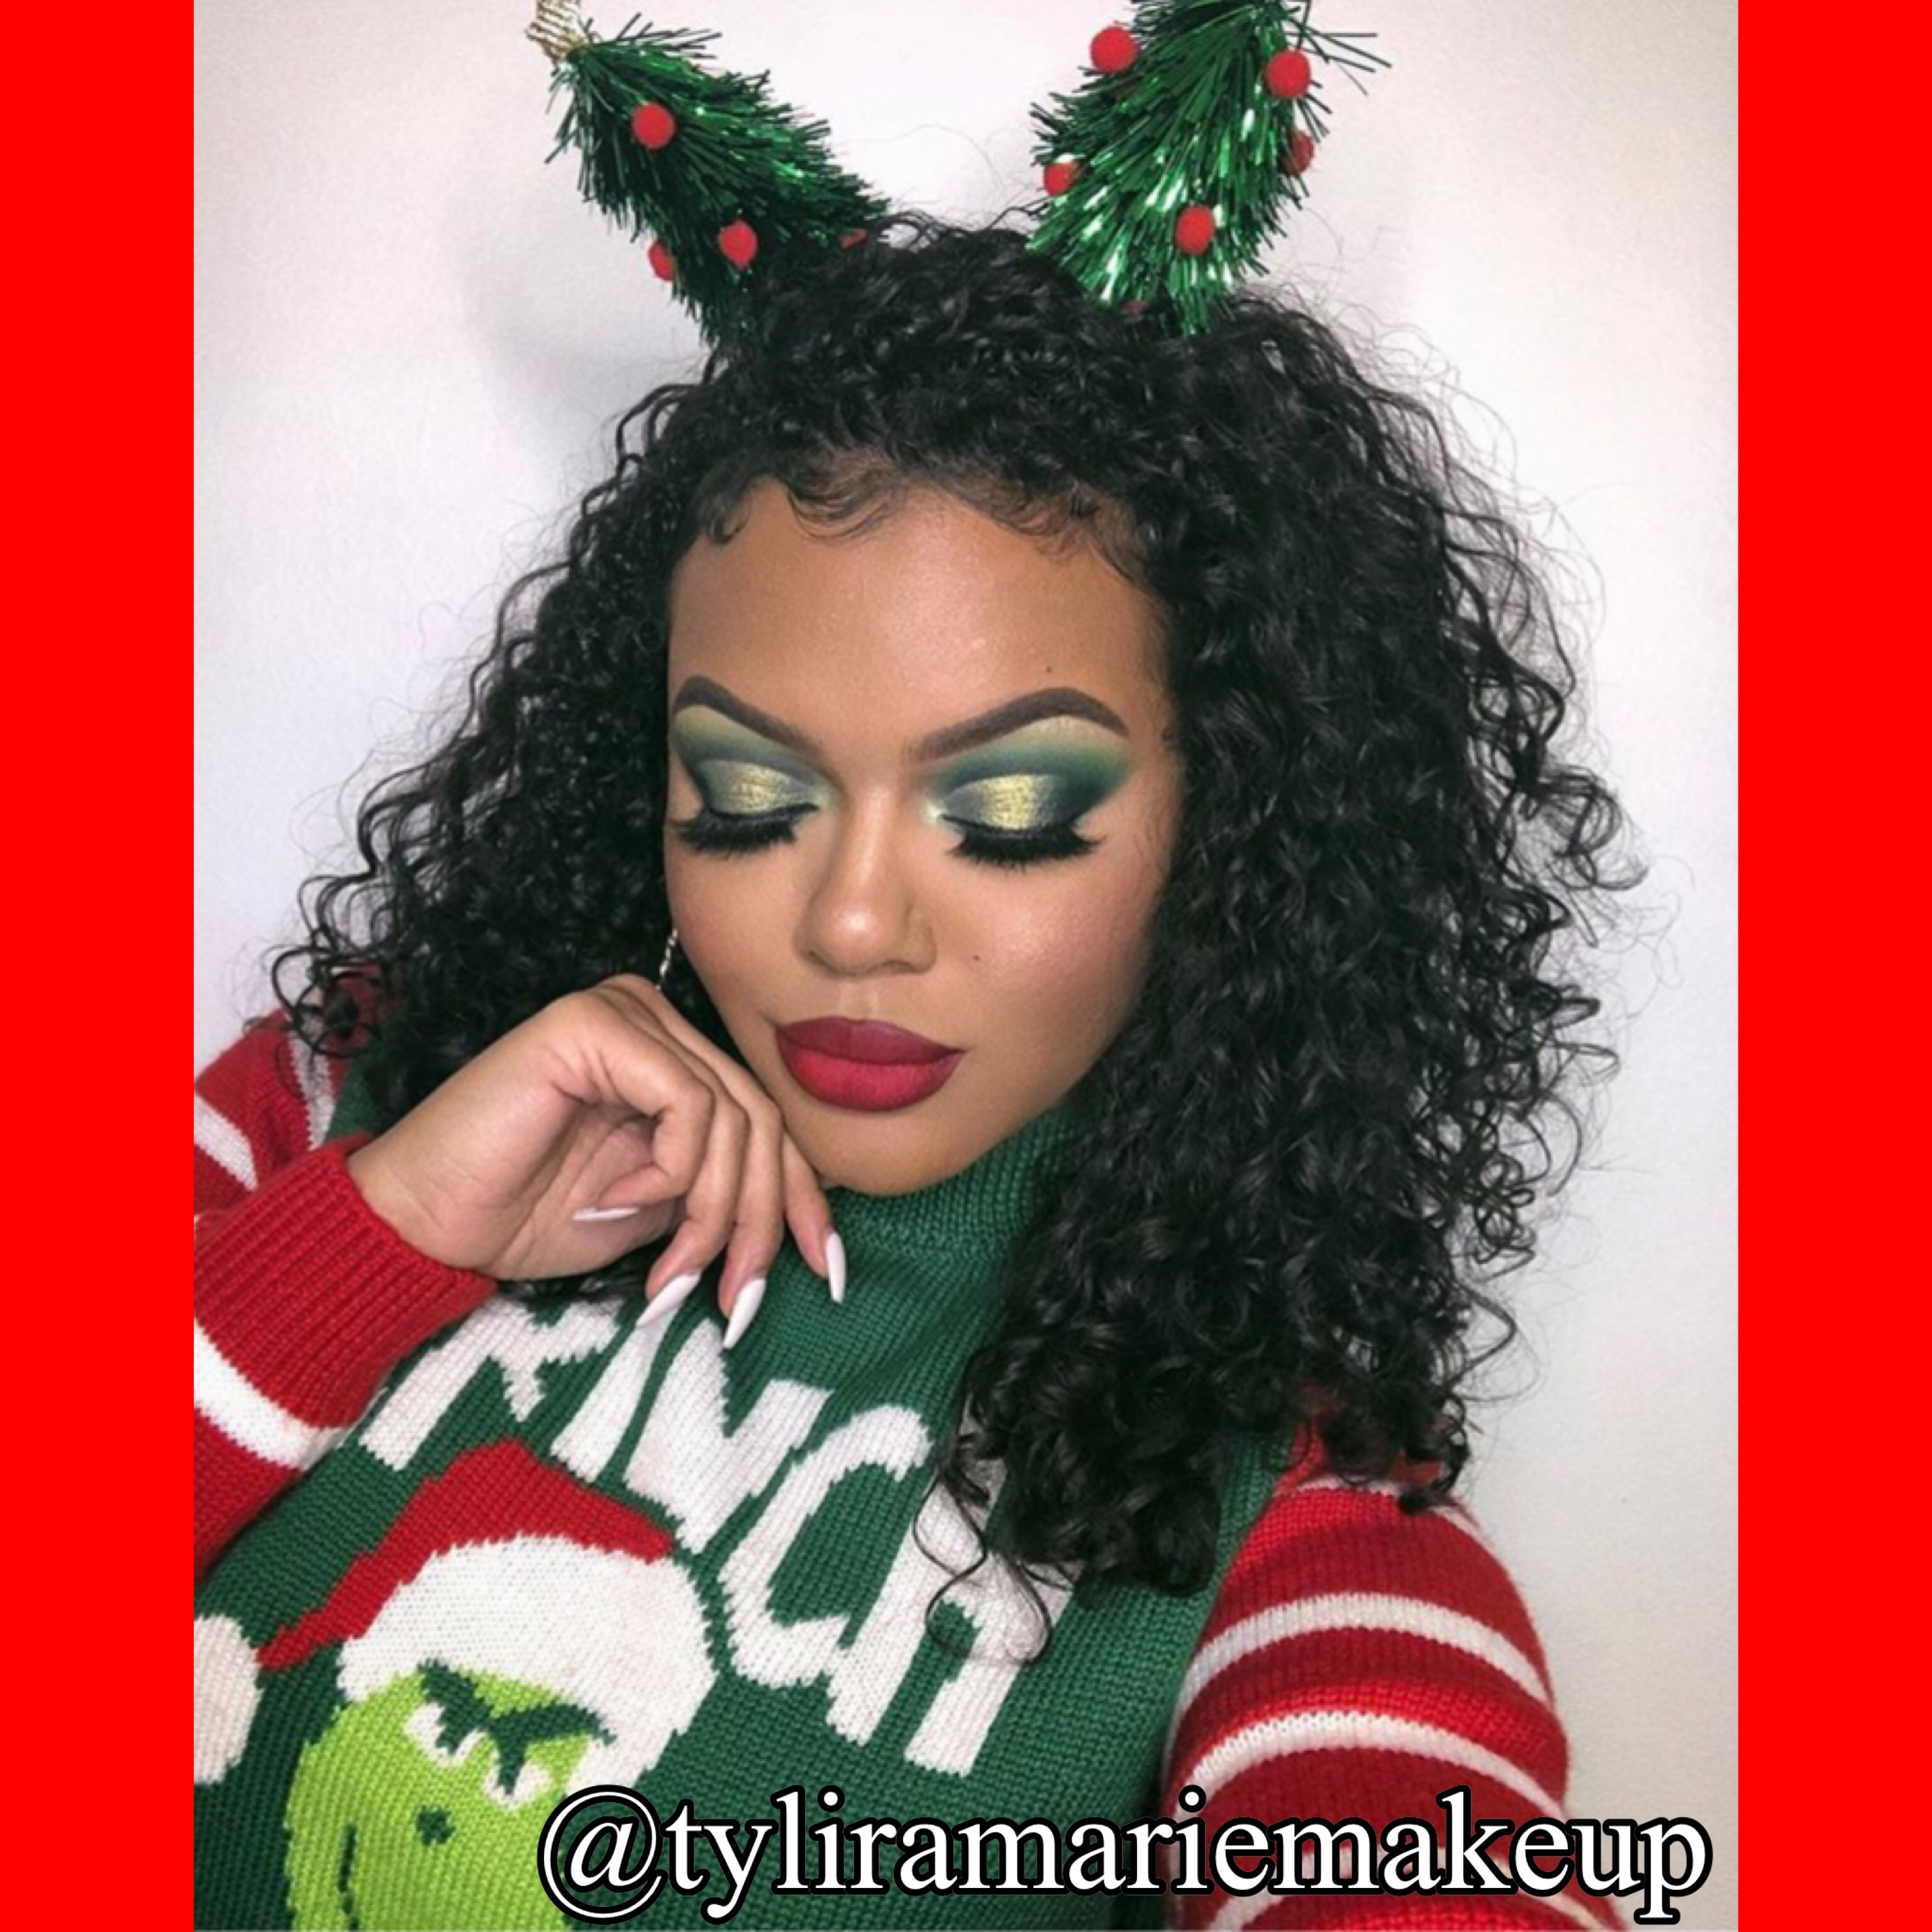 These Holiday Looks Will Get You In The Christmas Spirit!